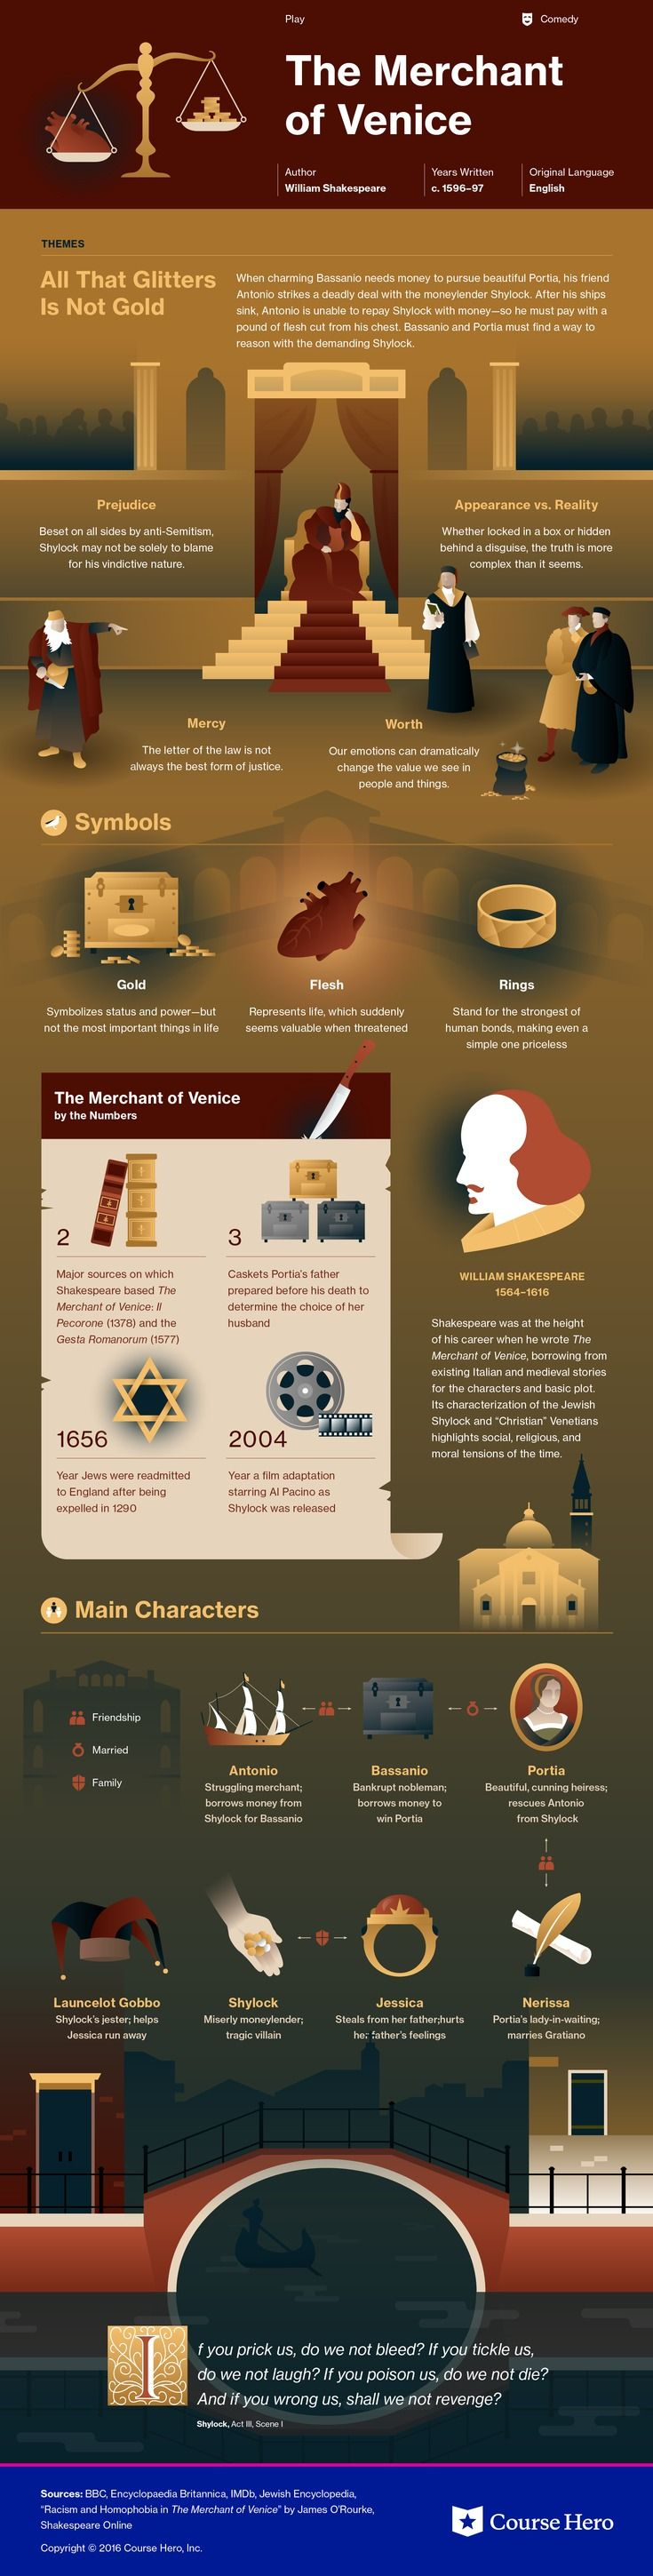 This @CourseHero infographic on The Merchant of Venice is both visually stunning and informative!